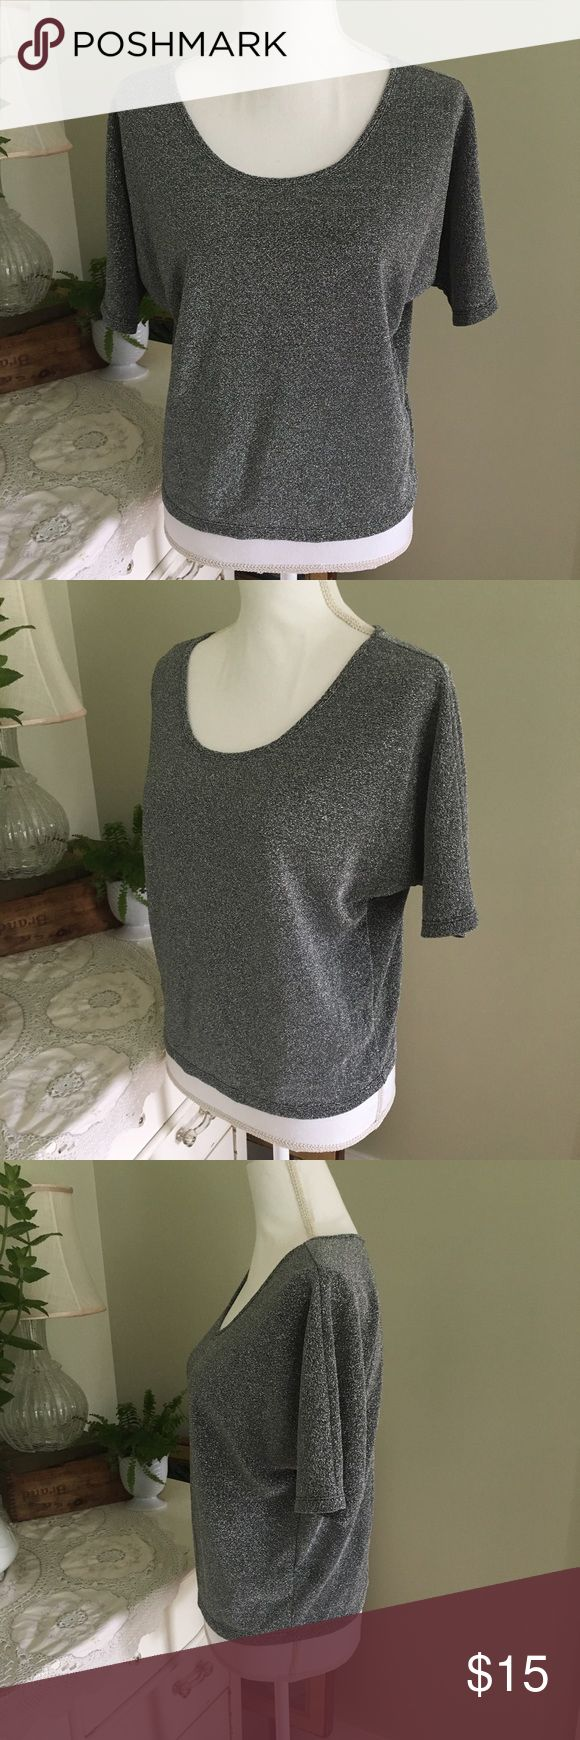 Express Silver Short Sleeve Top This shiny, silver top from Express is slightly sheer and lightweight. Features short sleeves and scoop neck. Size: XS. Express Tops